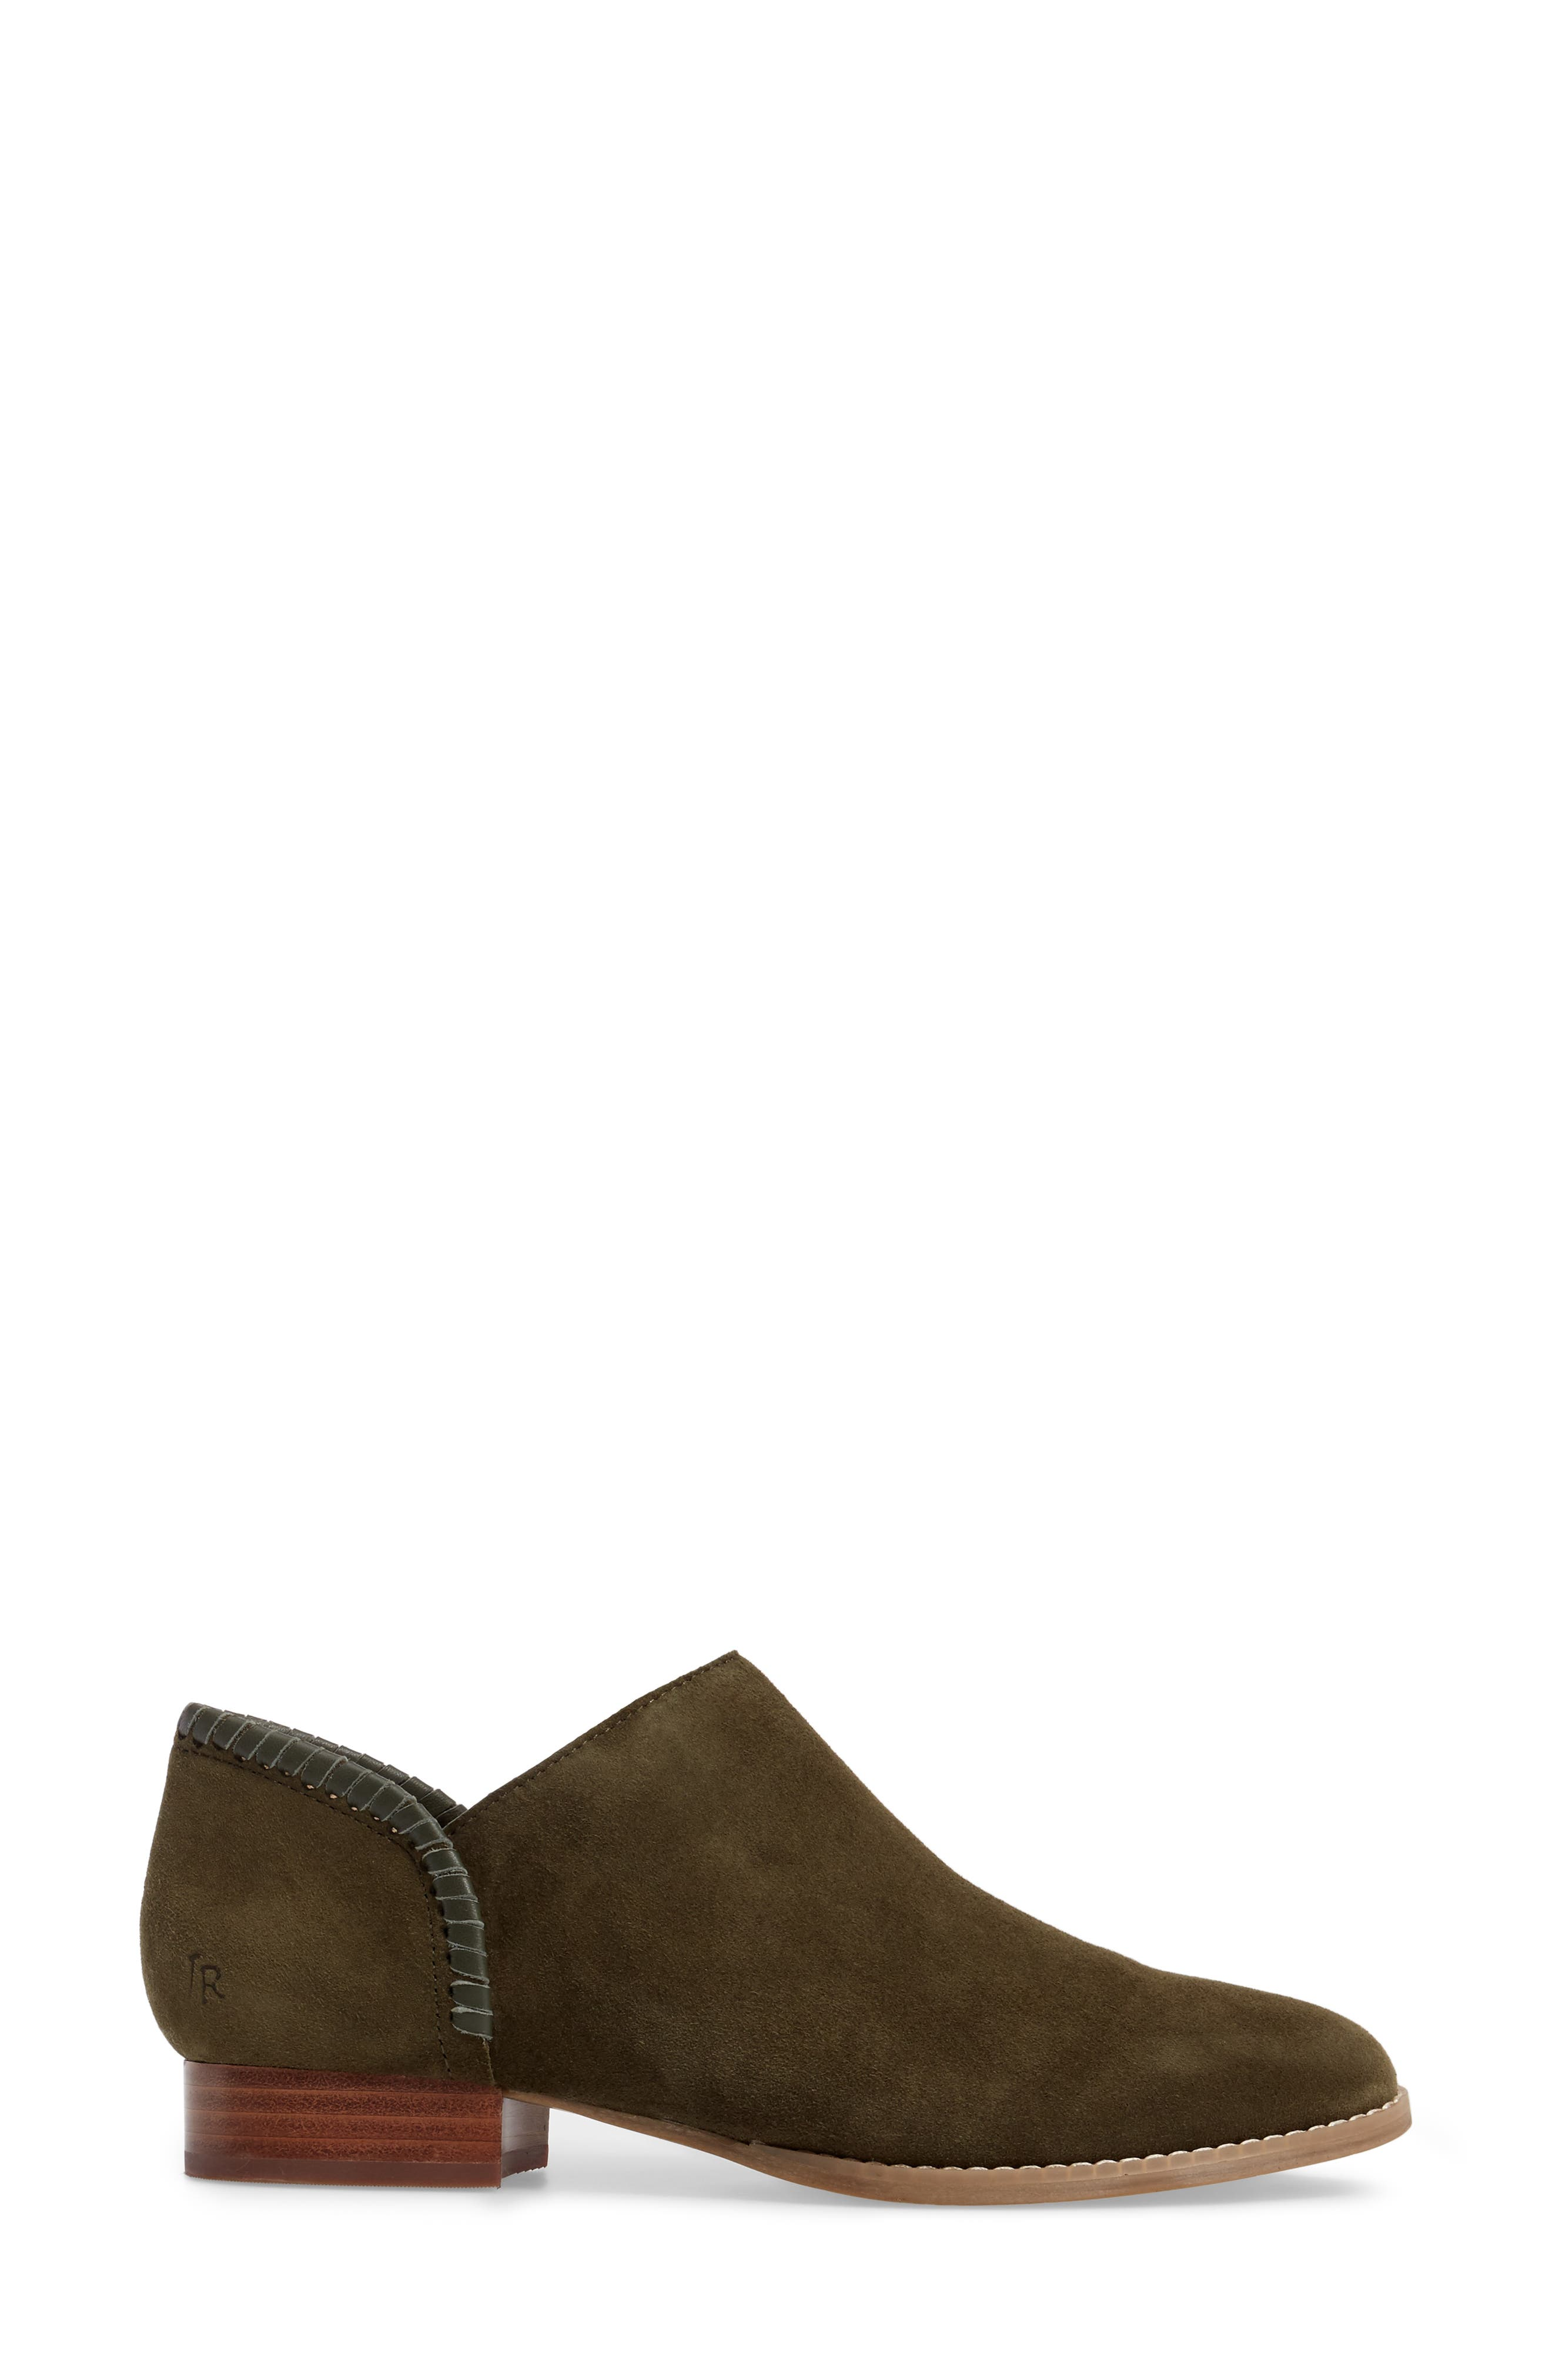 Avery Low Bootie,                             Alternate thumbnail 3, color,                             Olive Suede